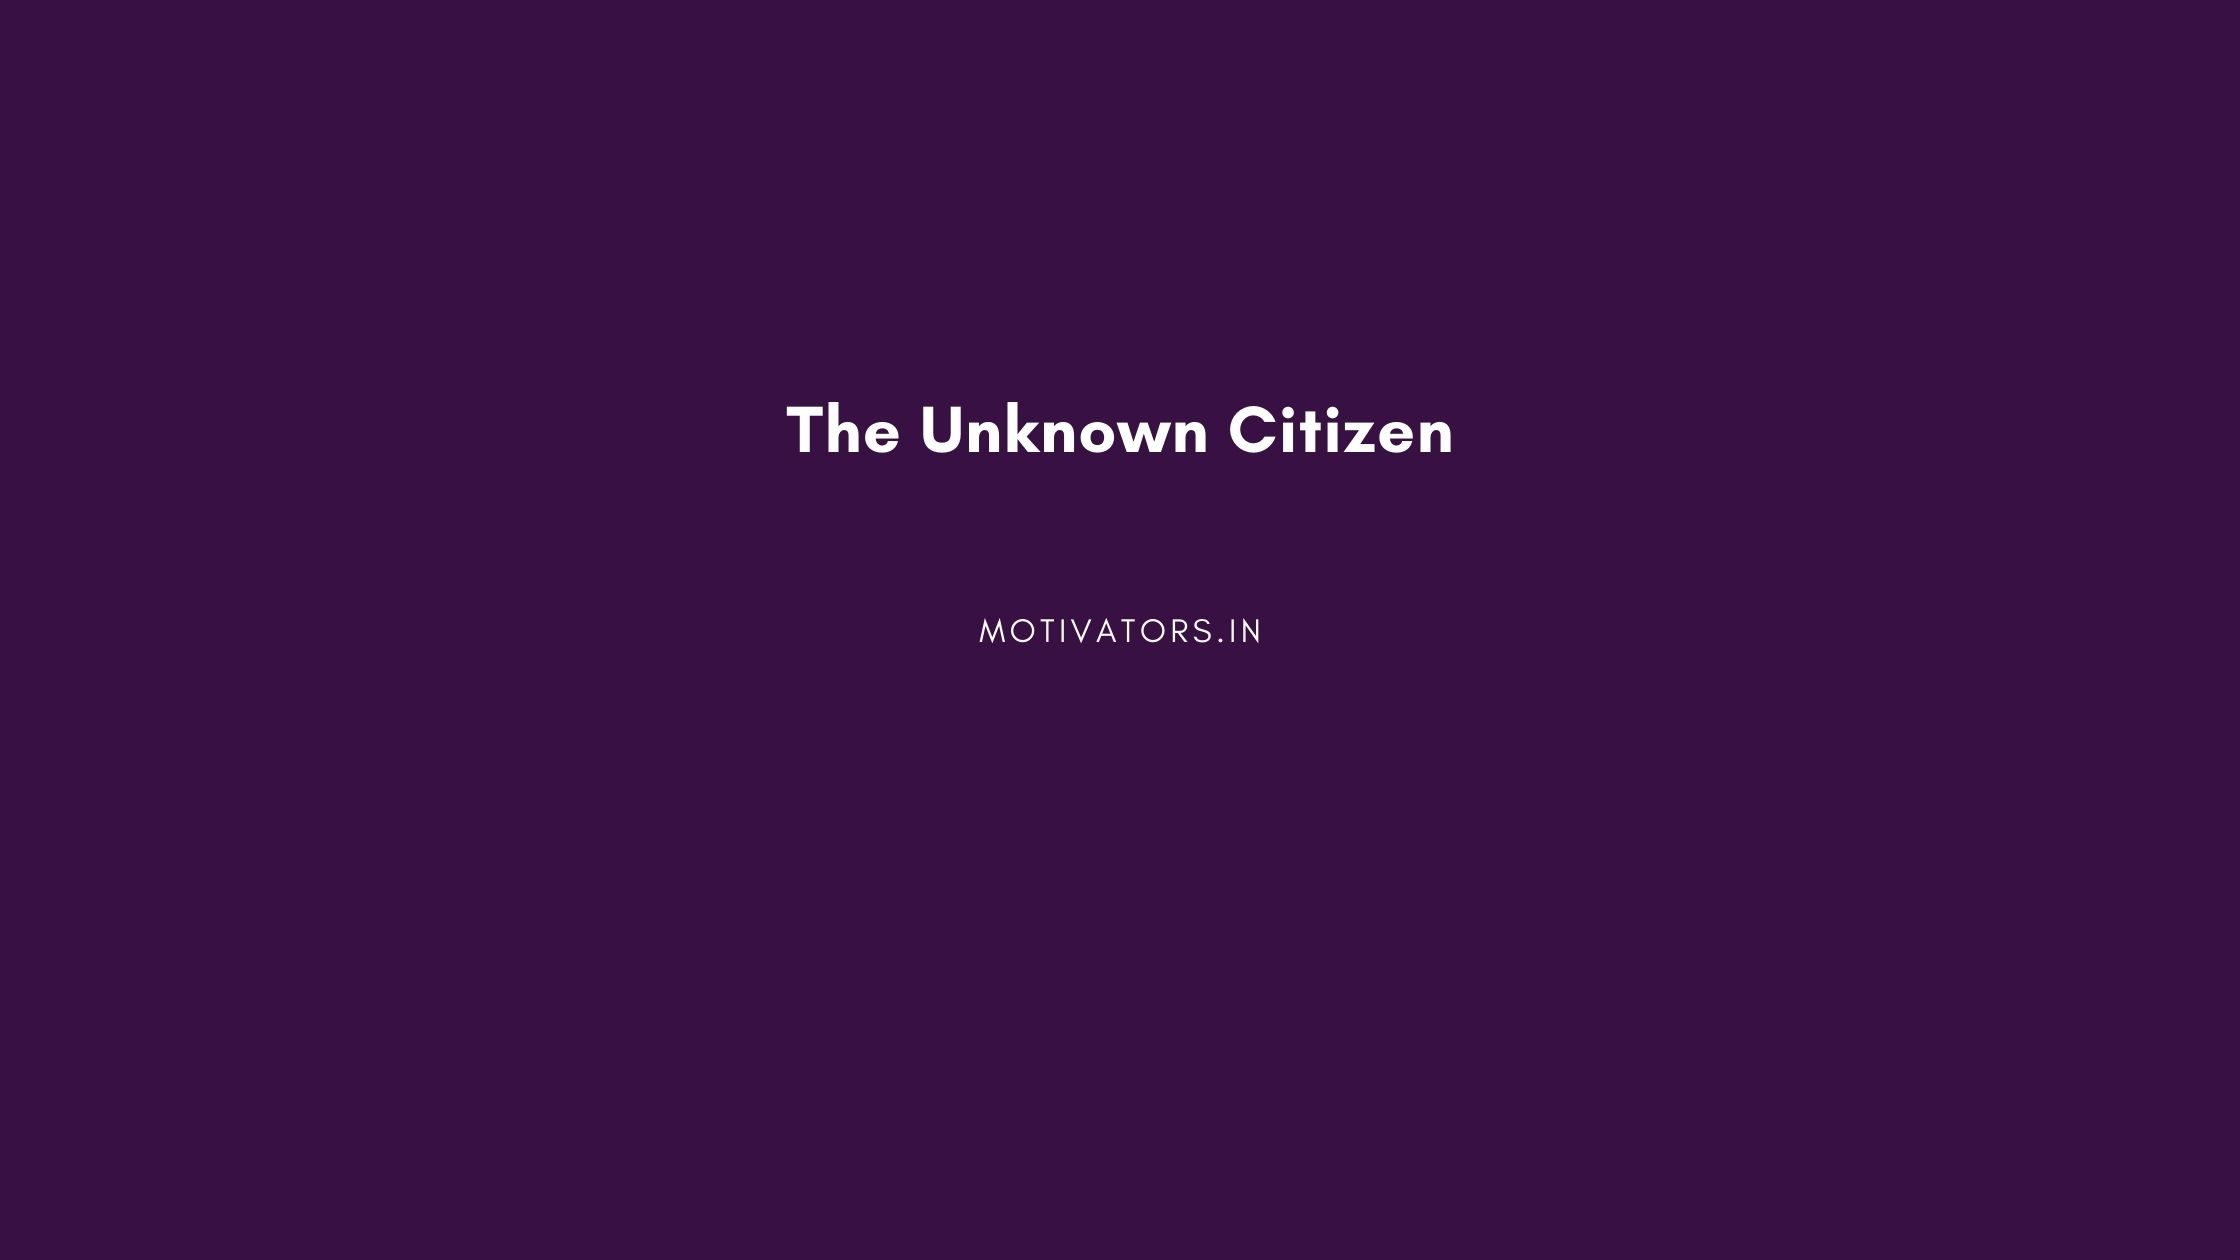 The Unknown Citizen